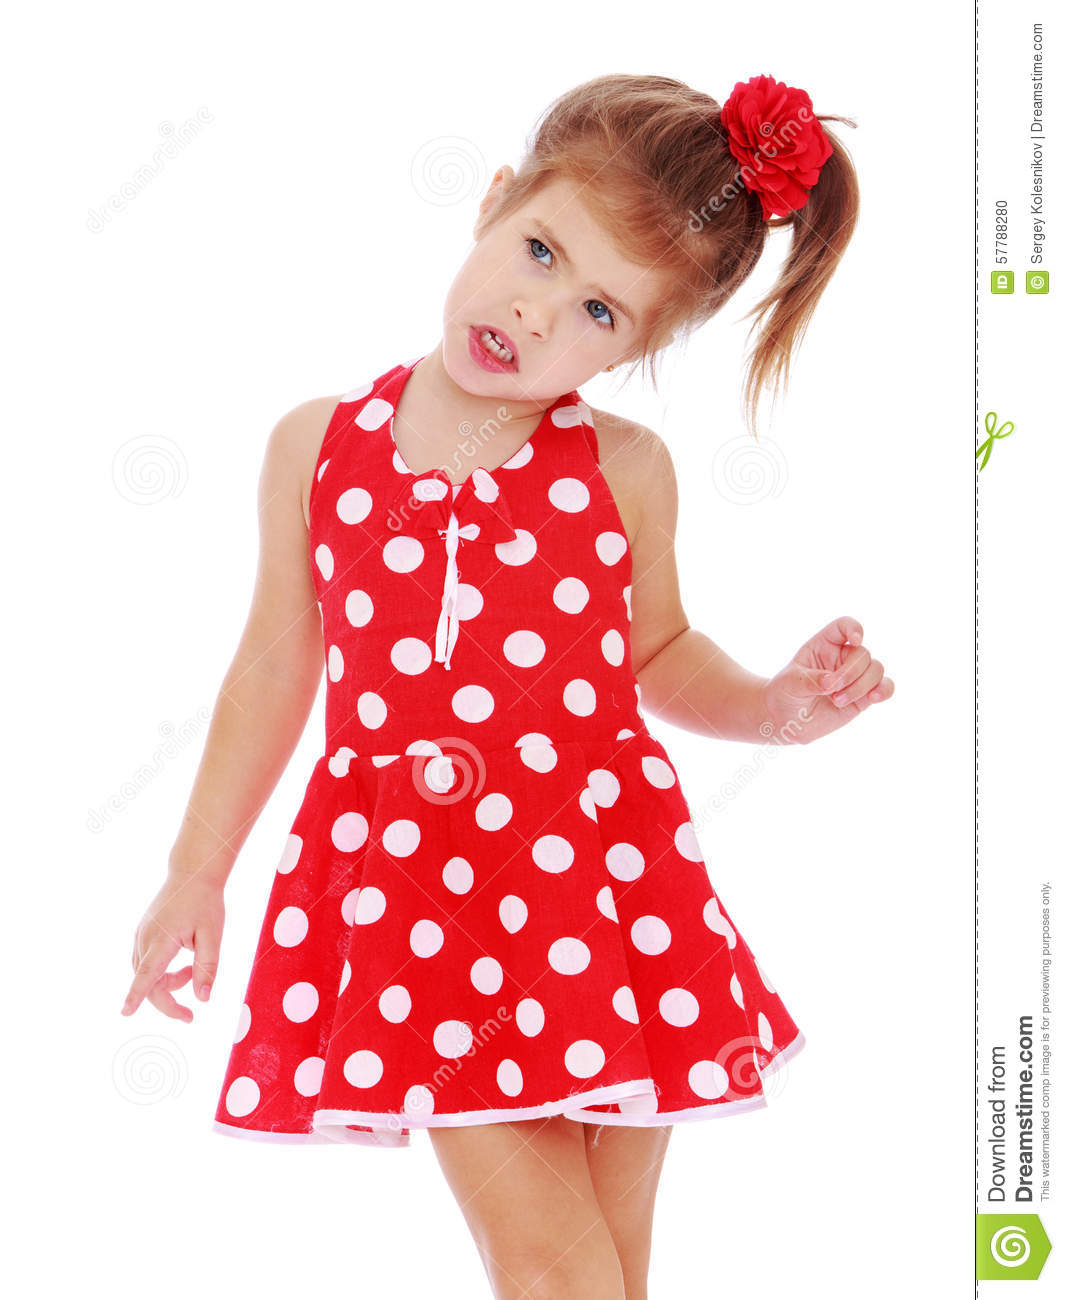 Beautiful Little Girl Bedrooms: Beautiful Little Girl In A Red Dress Stock Photo